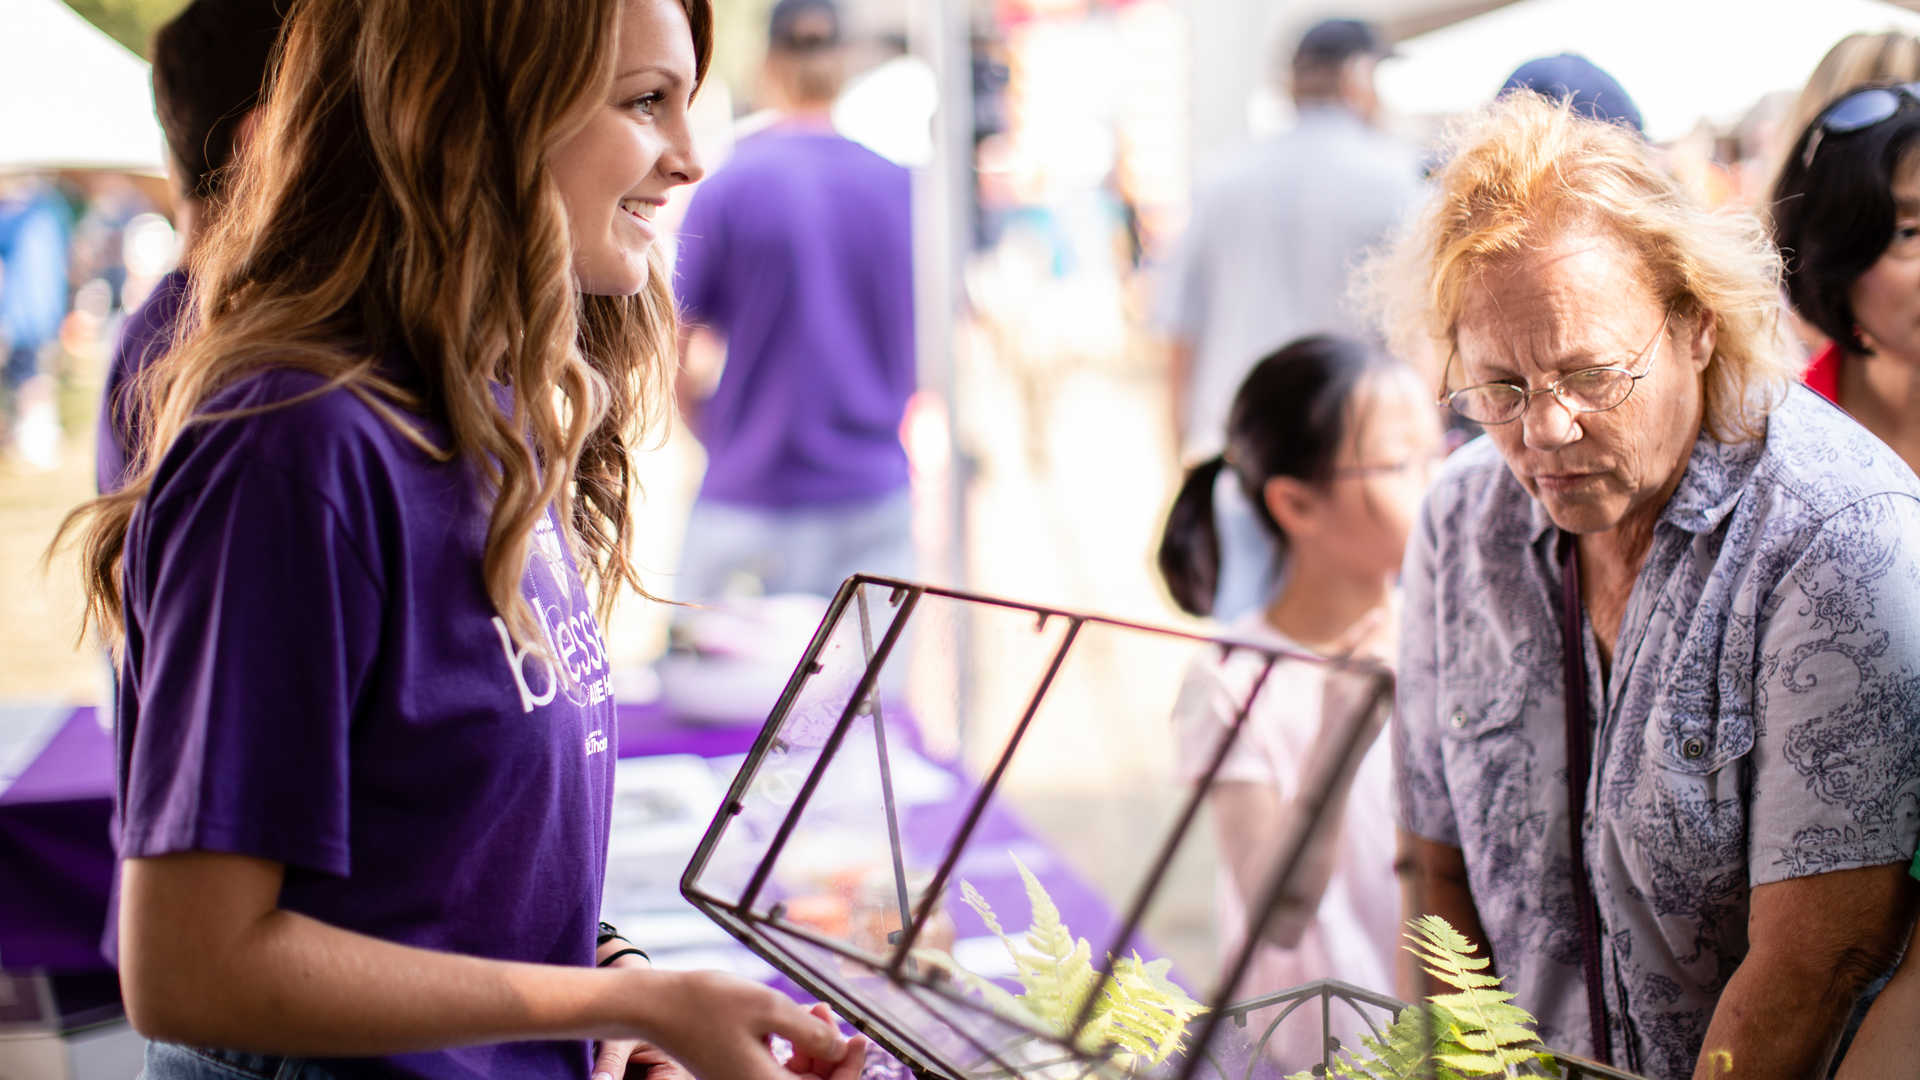 A St. Thomas student speaks with a visitor at the State Fair